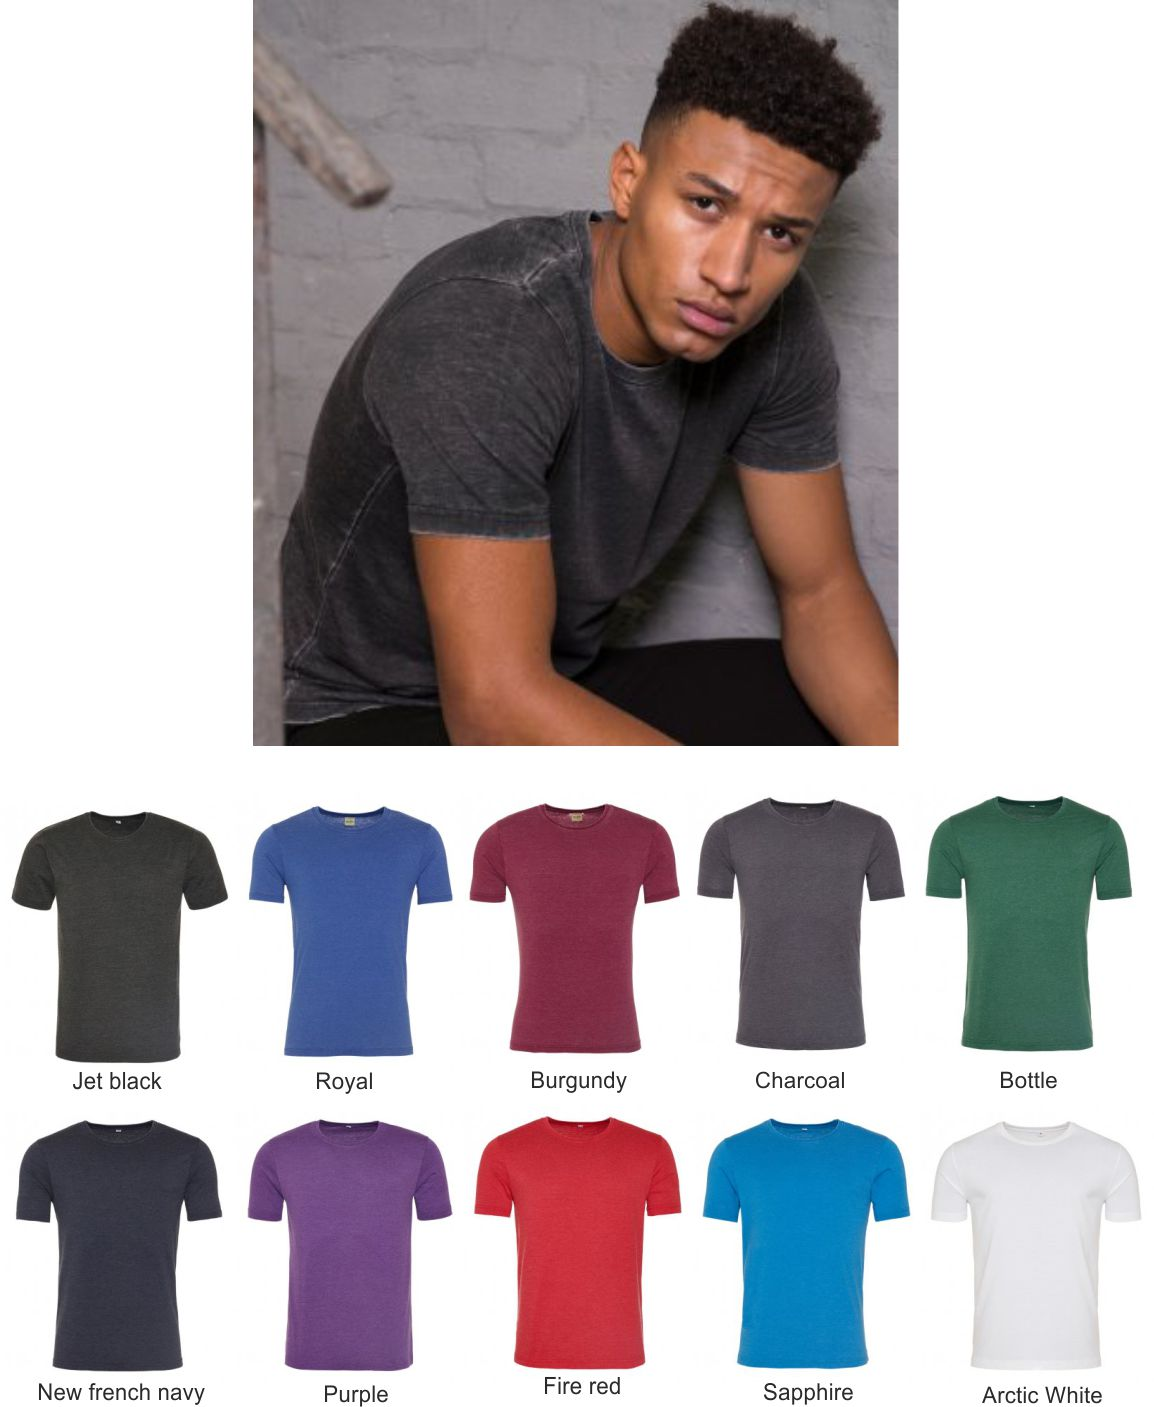 AWD JH099 Washed Tee Shirt